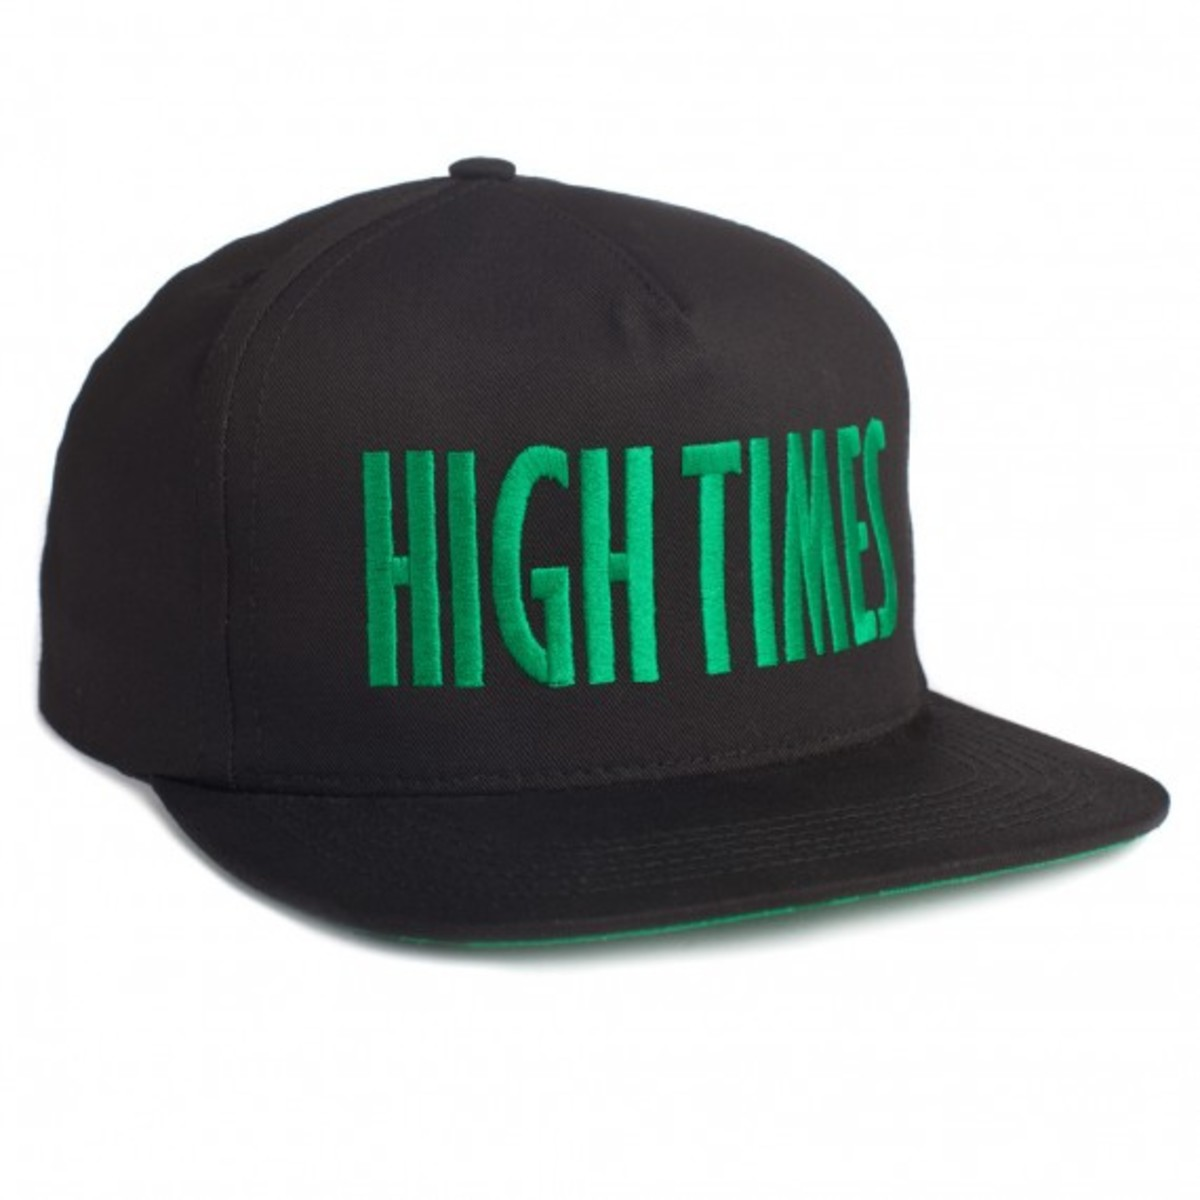 huf-high-times-capsule-collection-01